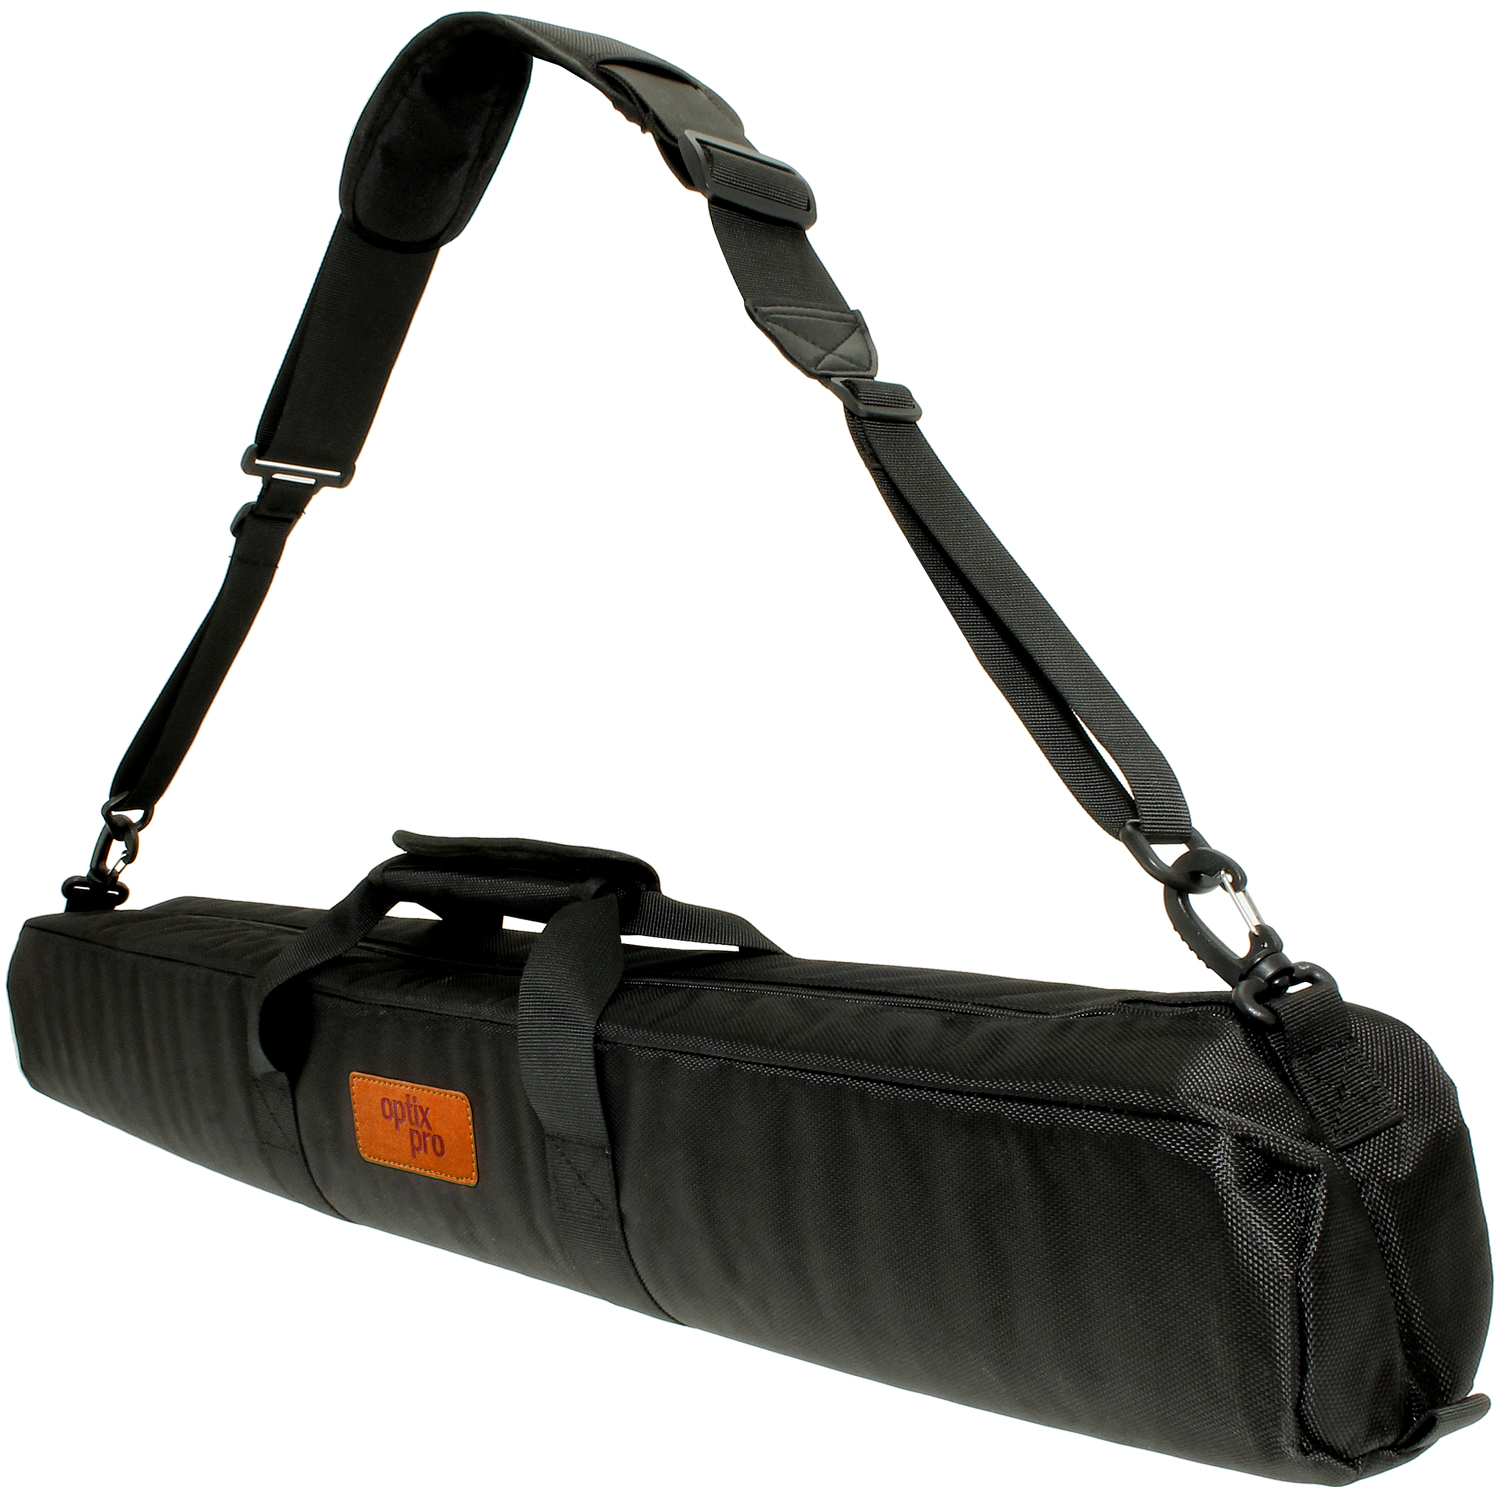 Optix Pro 80cm Padded Travel Carrying Bag with Shoulder Strap for Tripods - Black